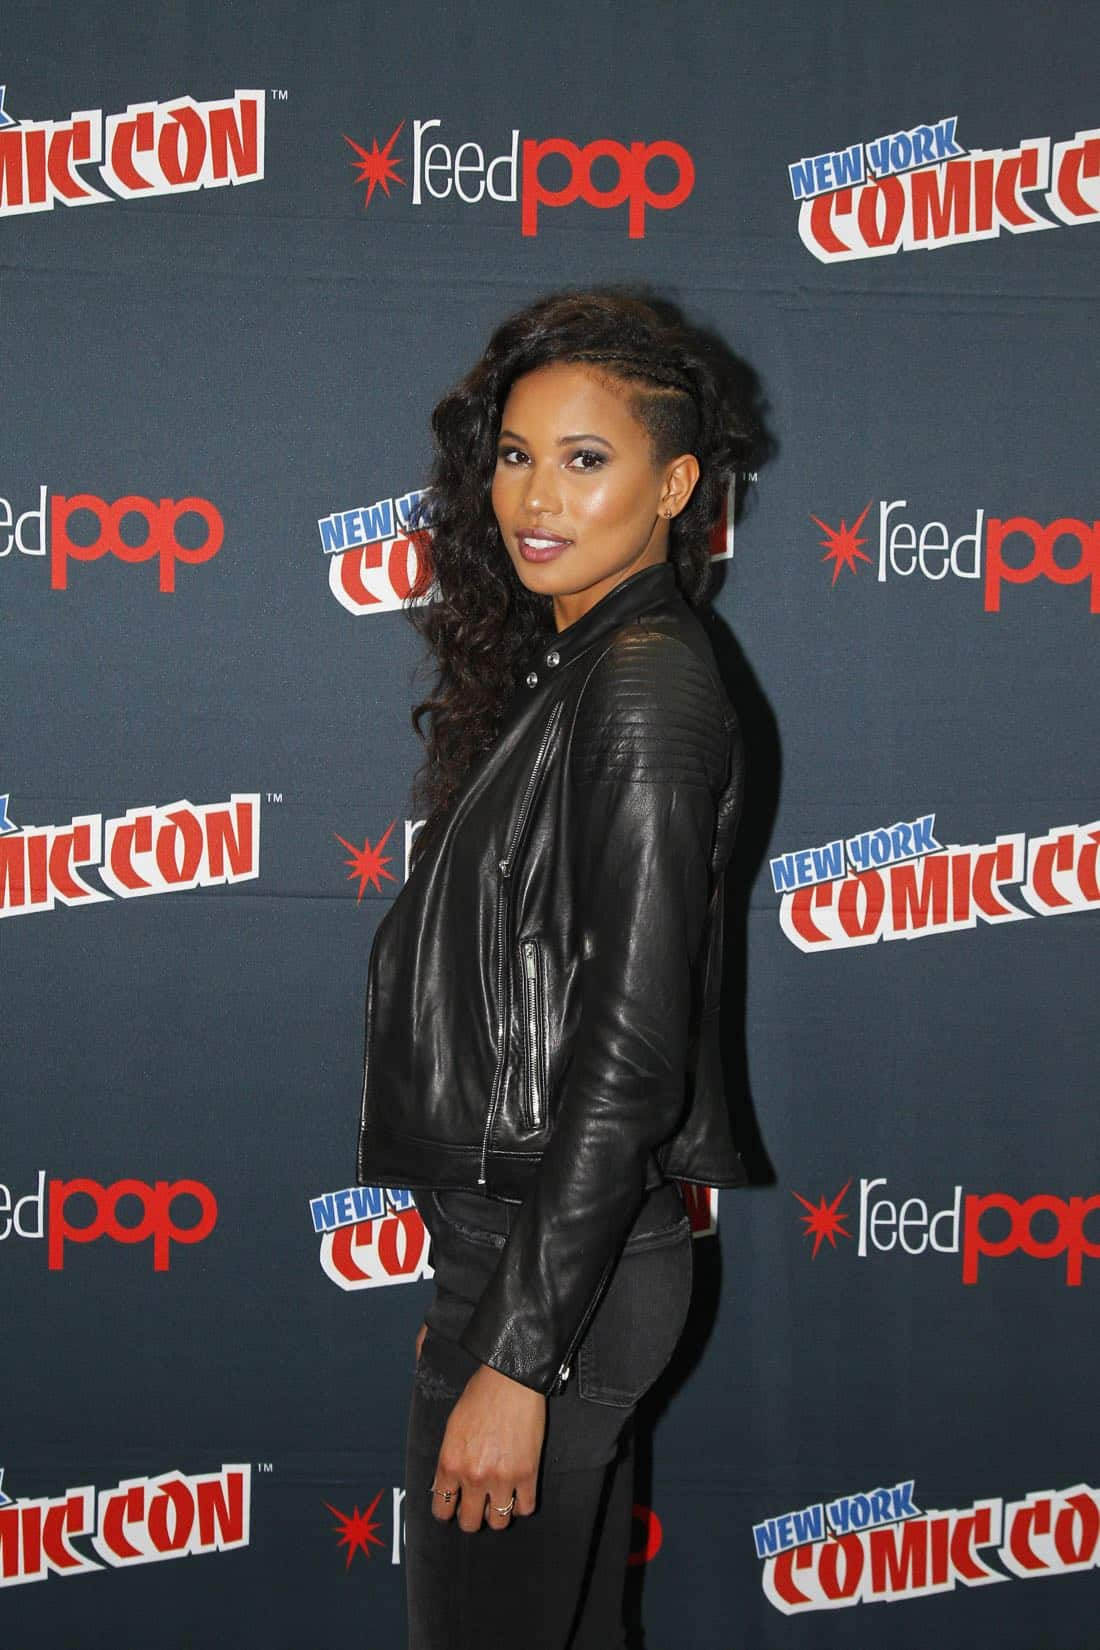 """NY COMIC-CON 2017 - SIREN - Freeform's genre programming was out in full force at this year's New York Comic Con on Saturday, October 7th with executive producers and cast from the hit series """"Shadowhunters,"""" """"Beyond,"""" and new original series """"Siren.""""  (Freeform/Lou Rocco) FOLA EVANS-AKINGBOLA"""